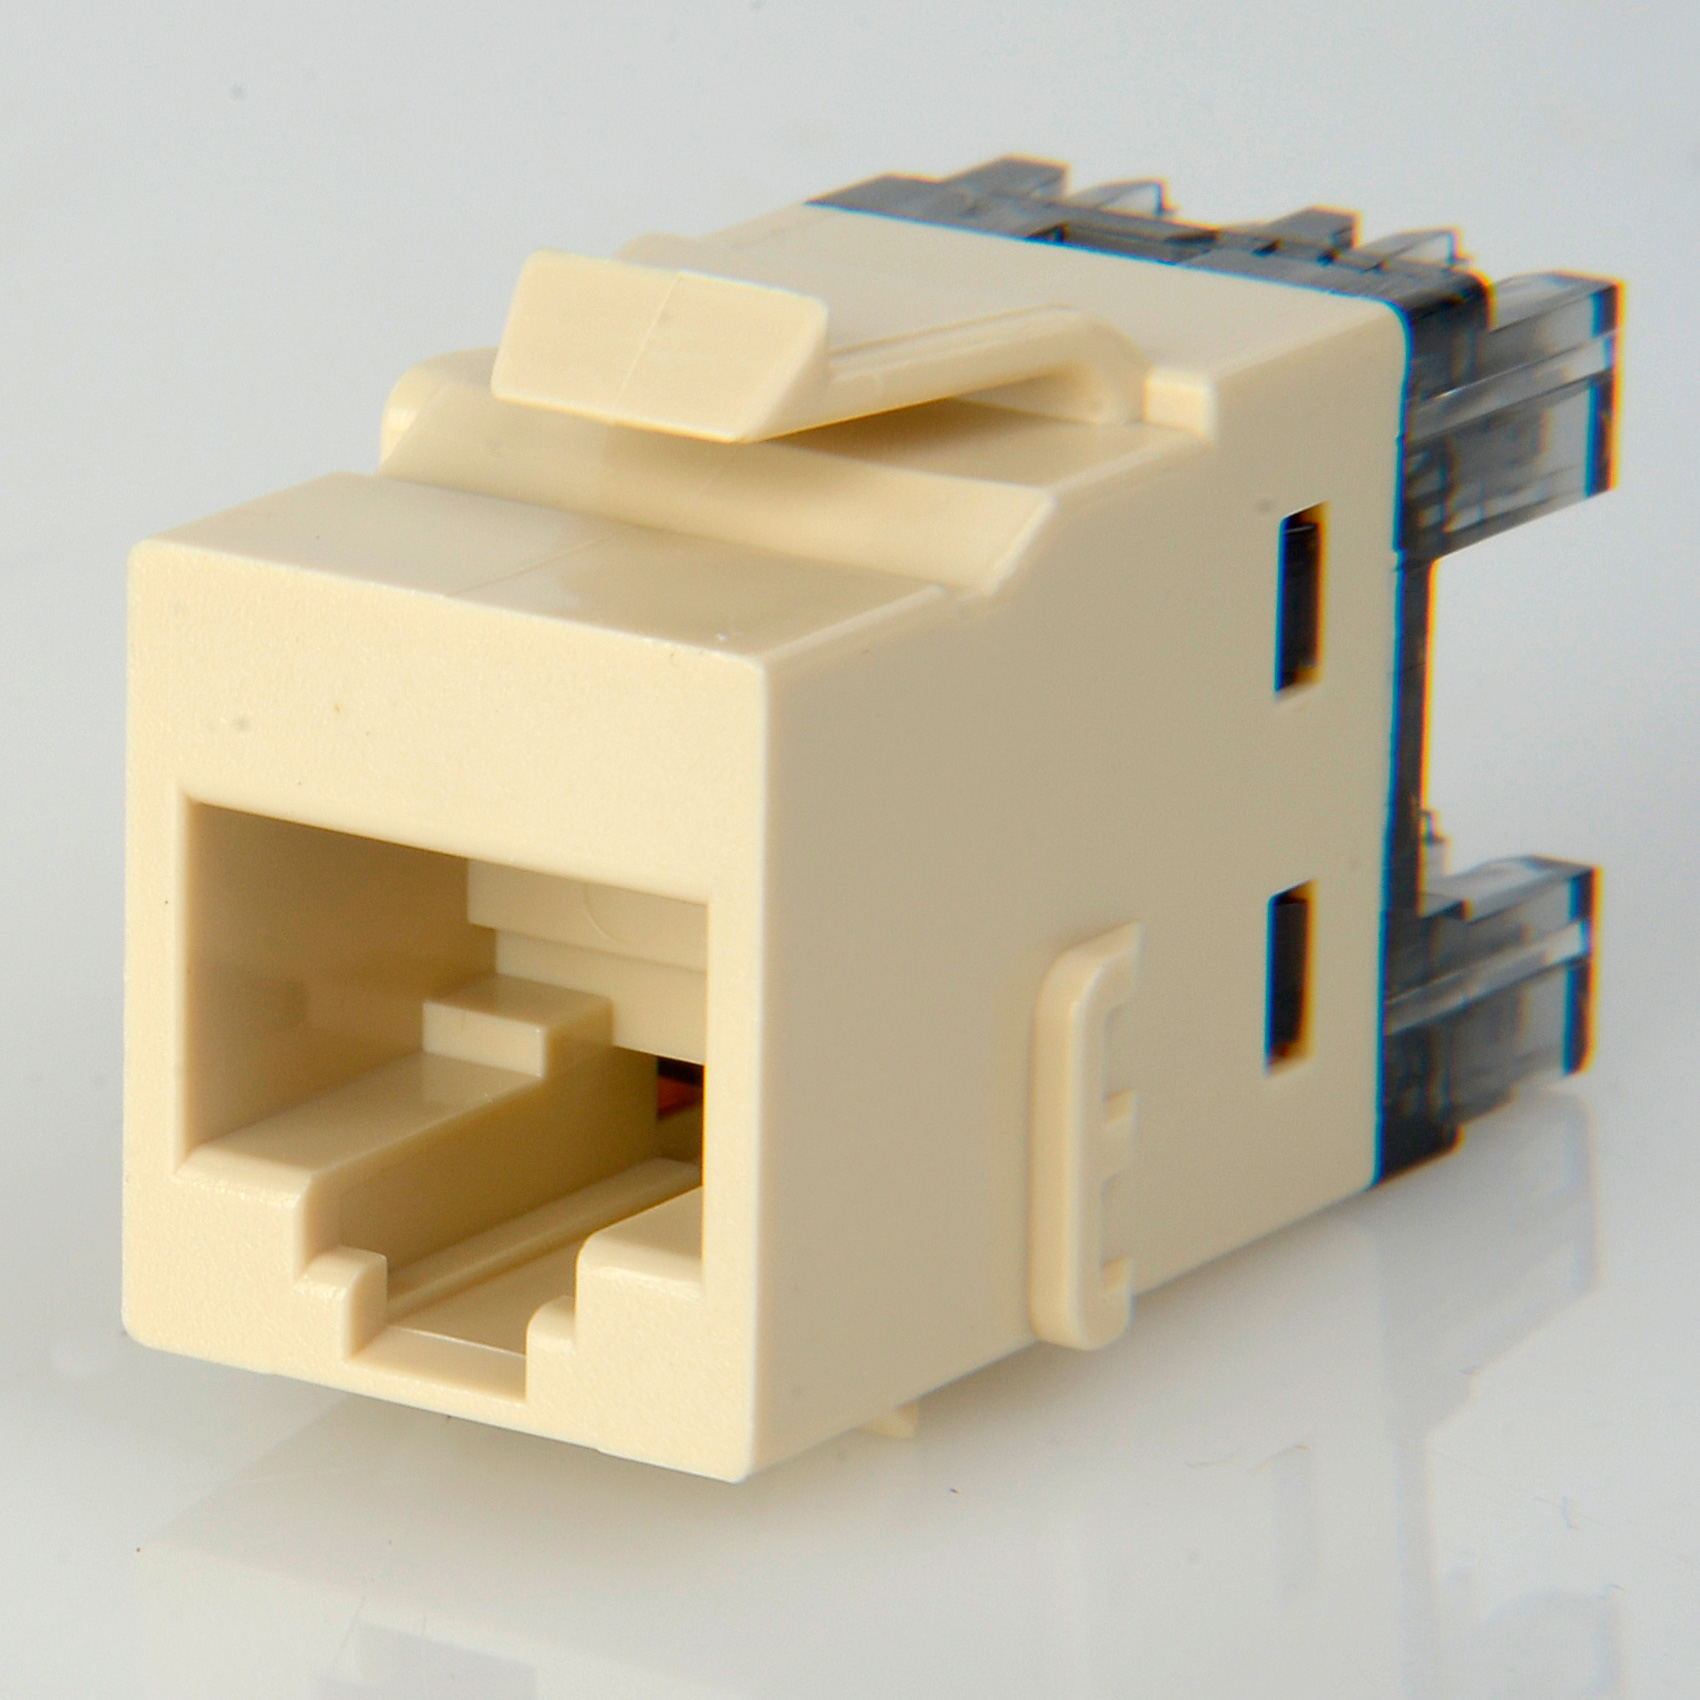 To Rj45 Connector Cat 6 Wiring Diagram Additionally Trailer Wiring